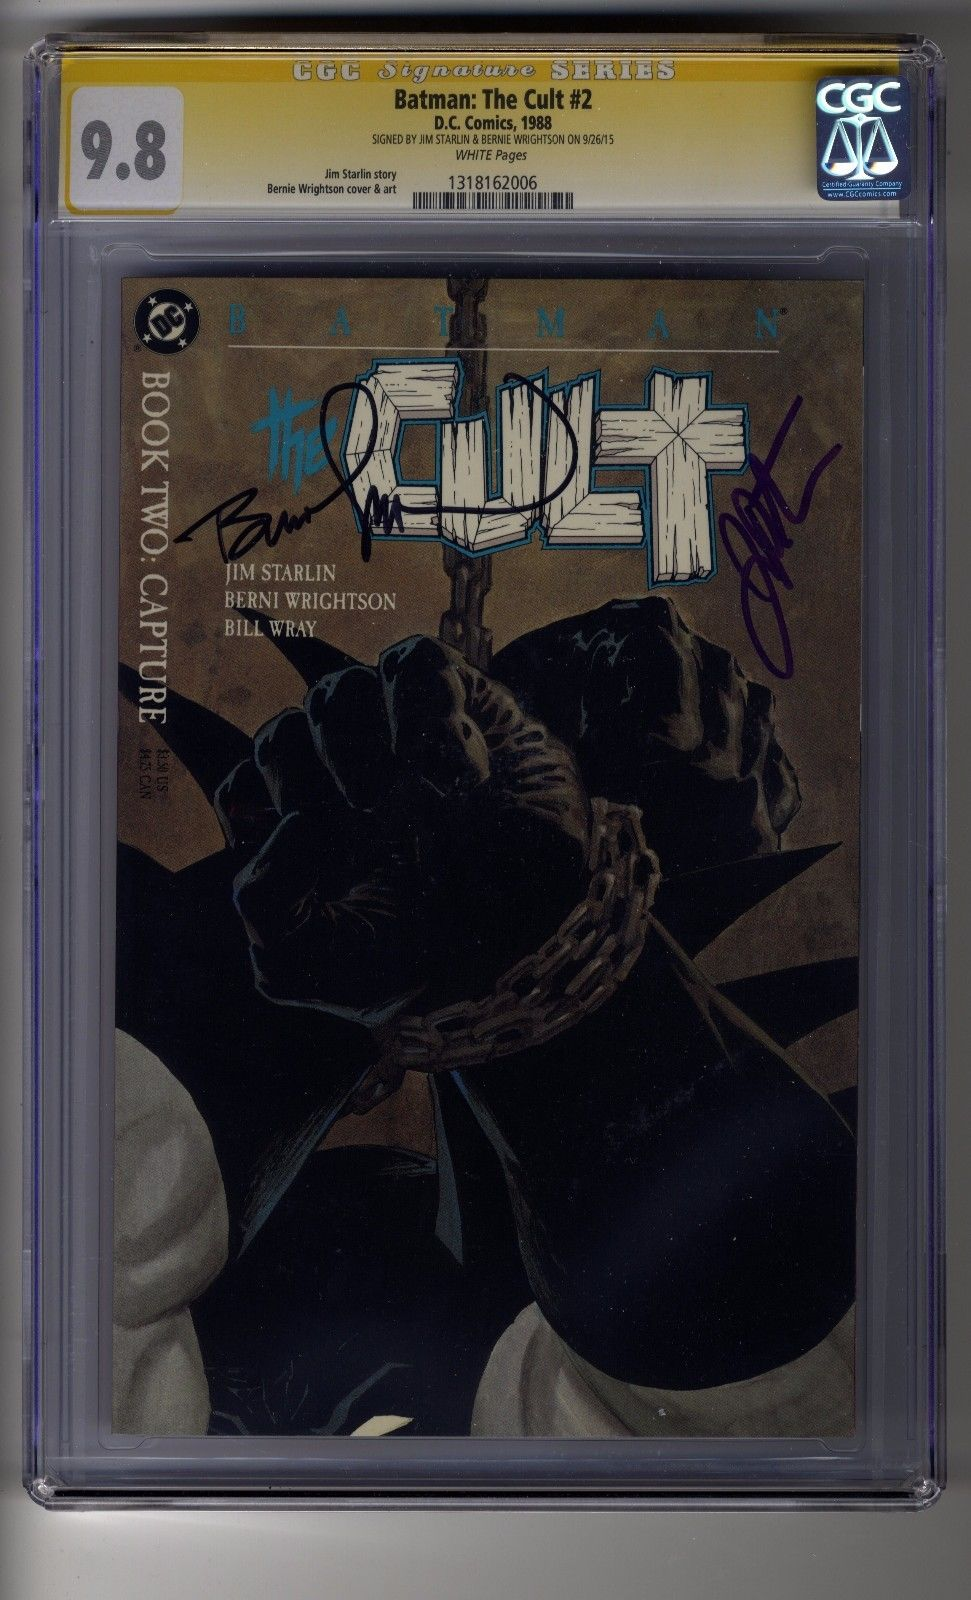 Batman: The Cult # 2 - CGC 9.8 WHITE Pages - SS2X Bernie Wrightson & Jim Starlin